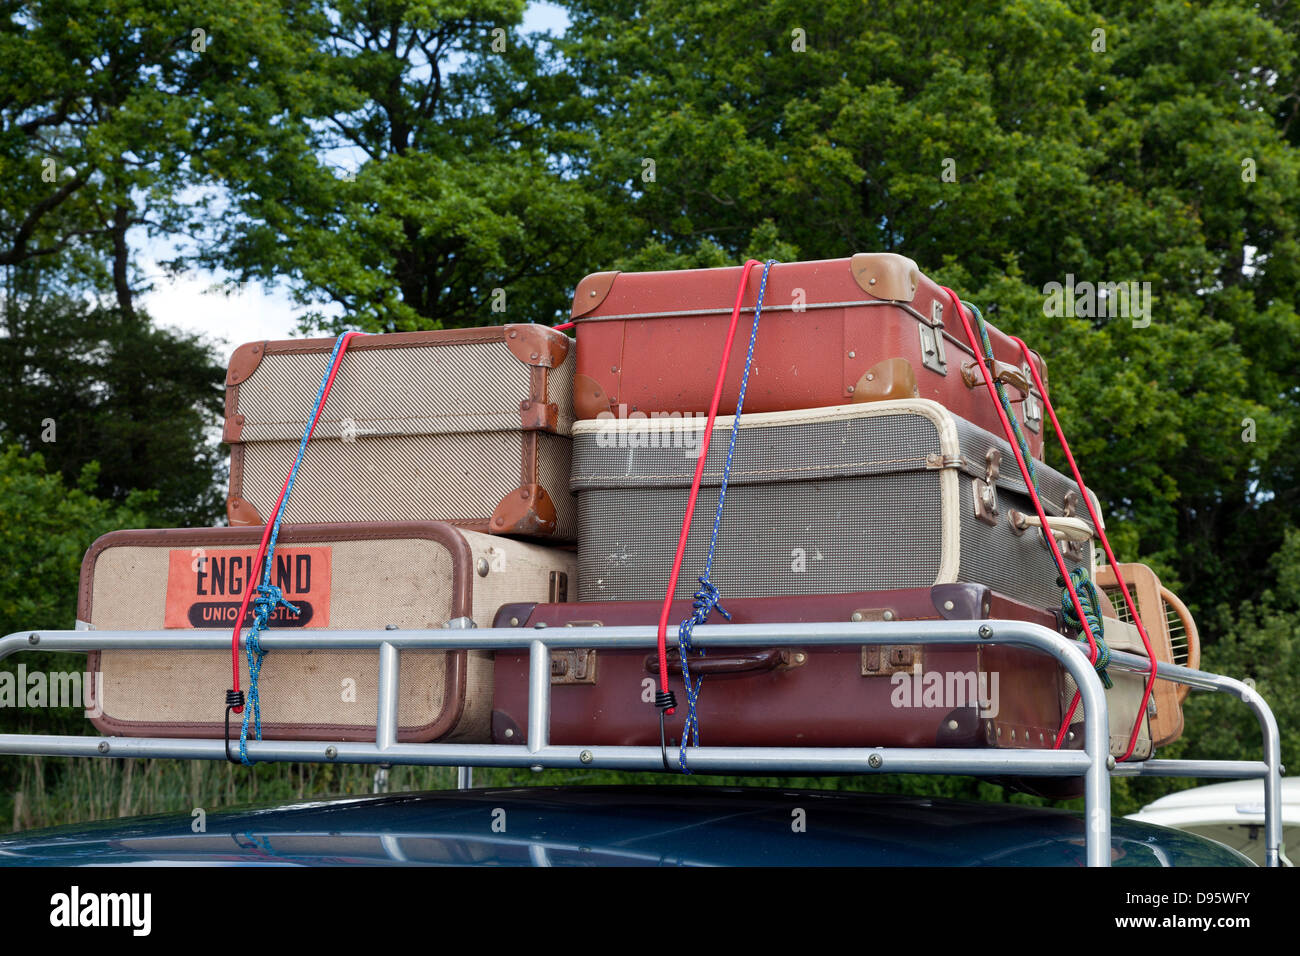 Old style fashioned luggage suitcases on car roof rack - Stock Image